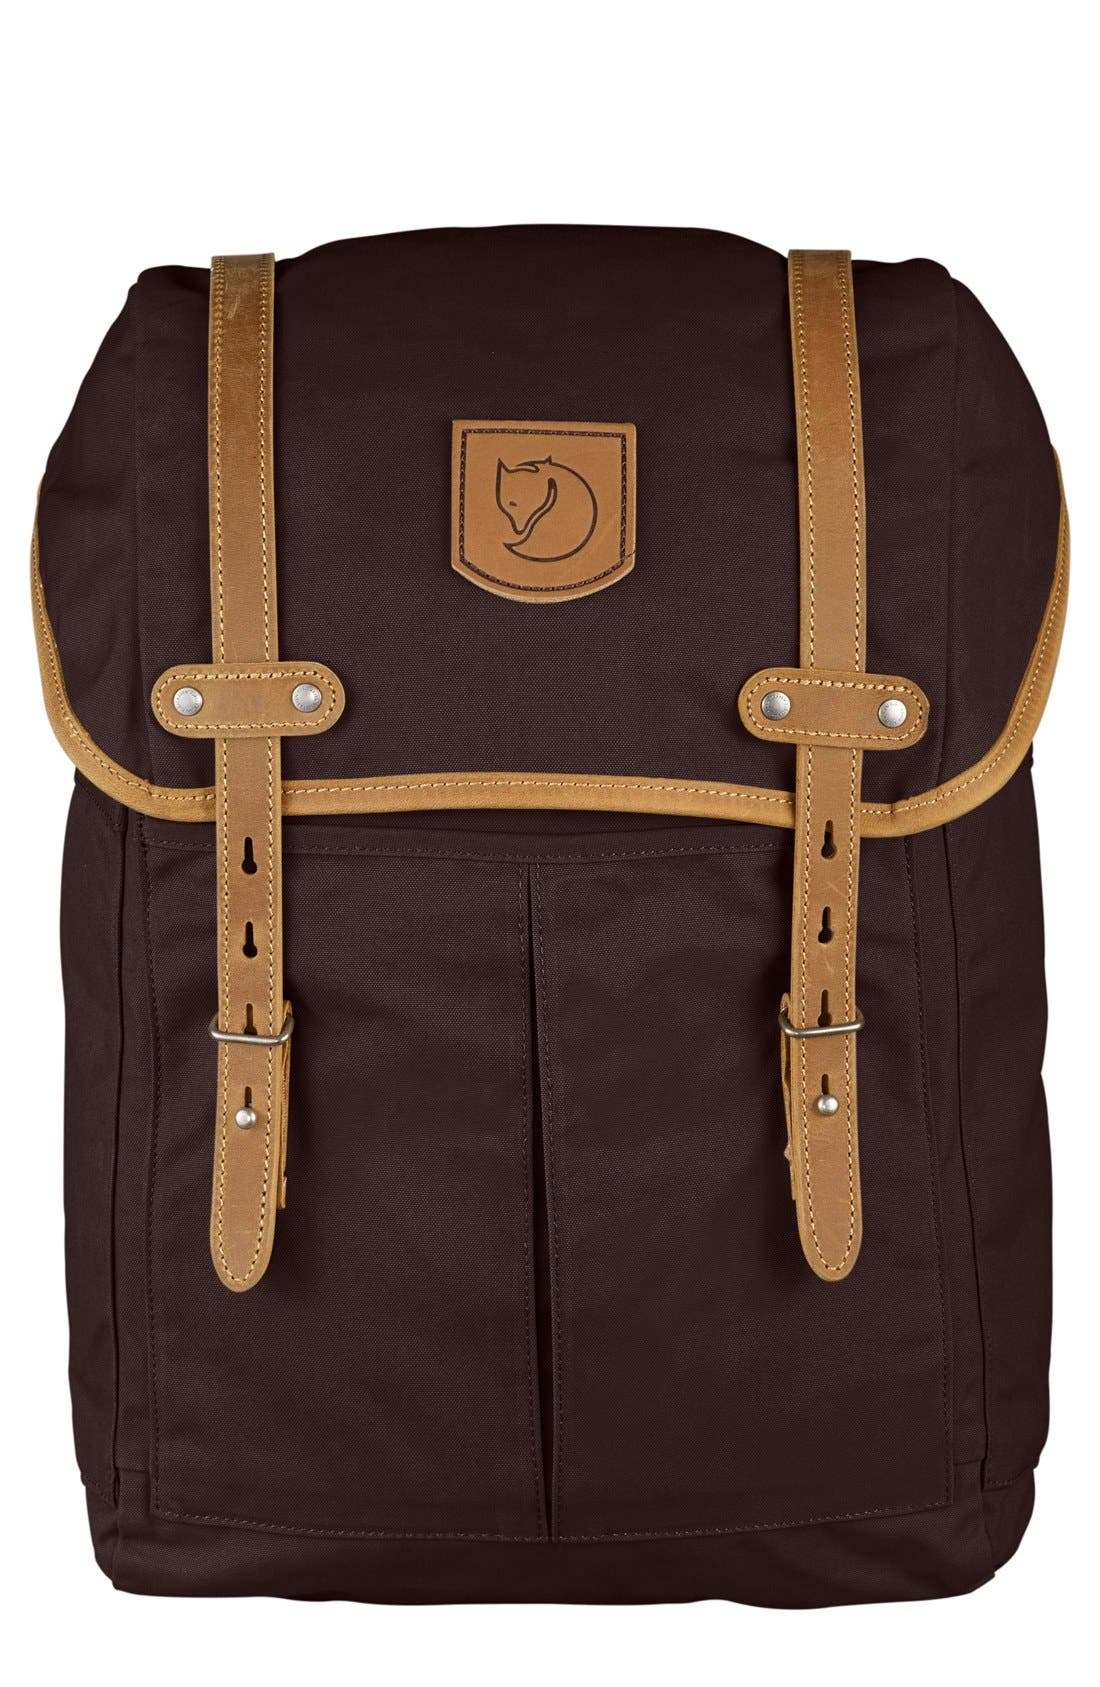 'No. 21' Rucksack,                             Main thumbnail 1, color,                             Hickory Brown